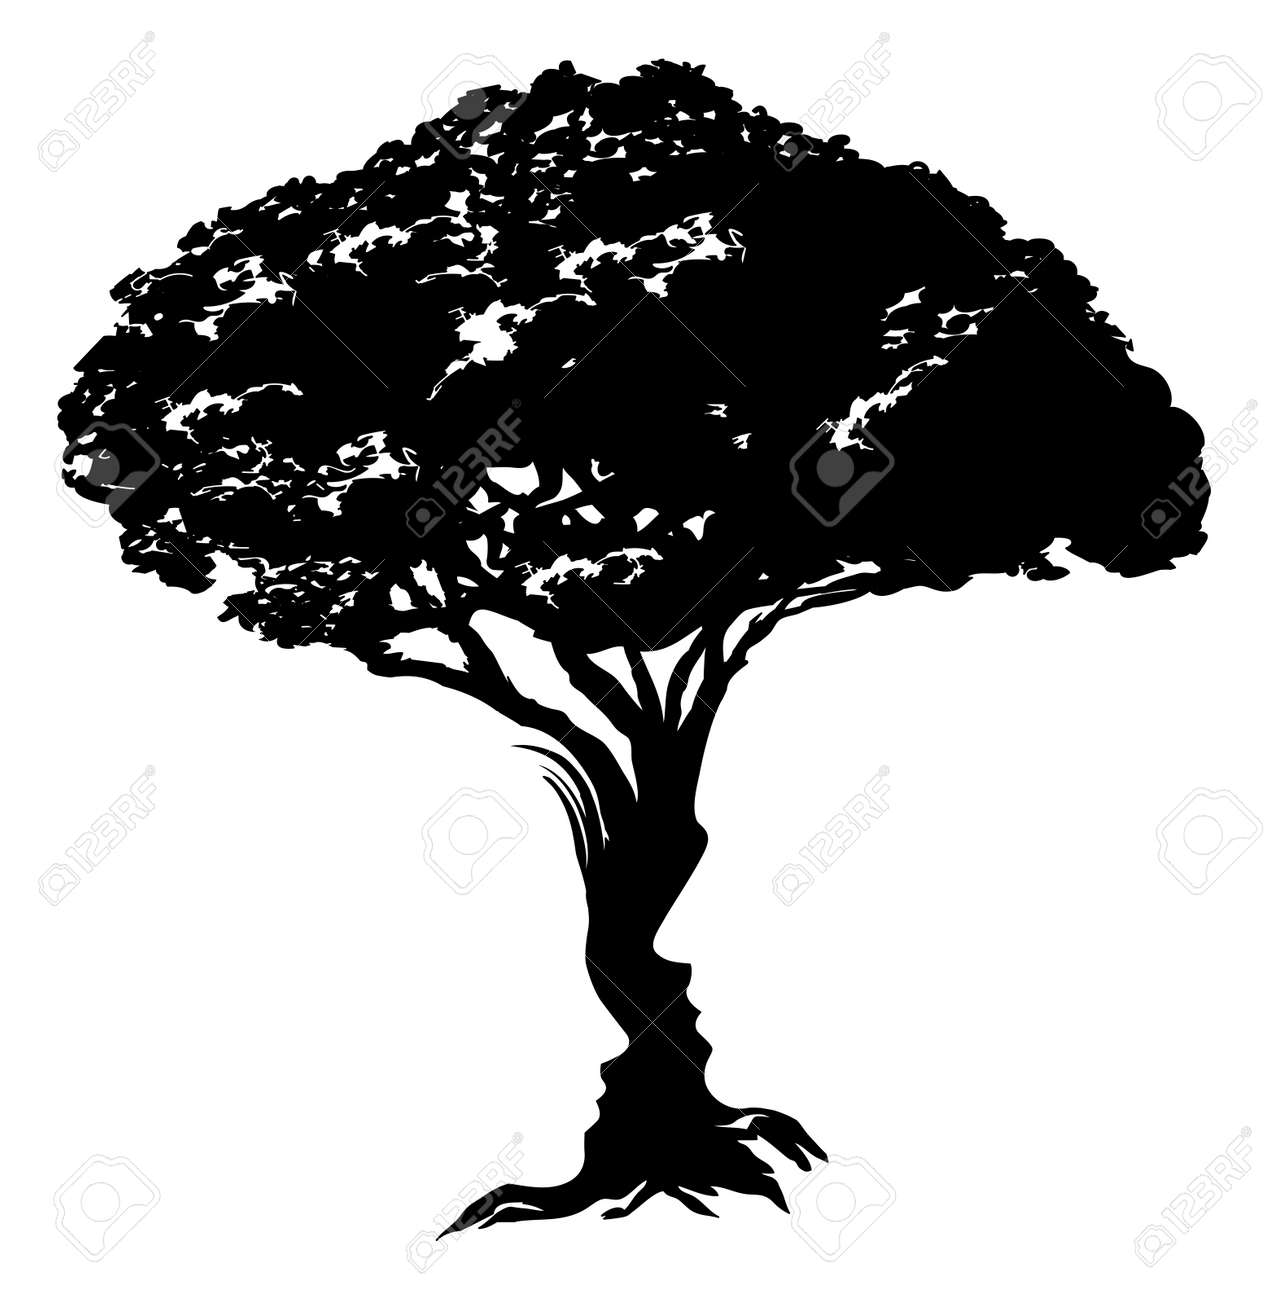 An Illustration Of Abstract Tree Optical Illusion Formed From A Man And Womans Face Concept